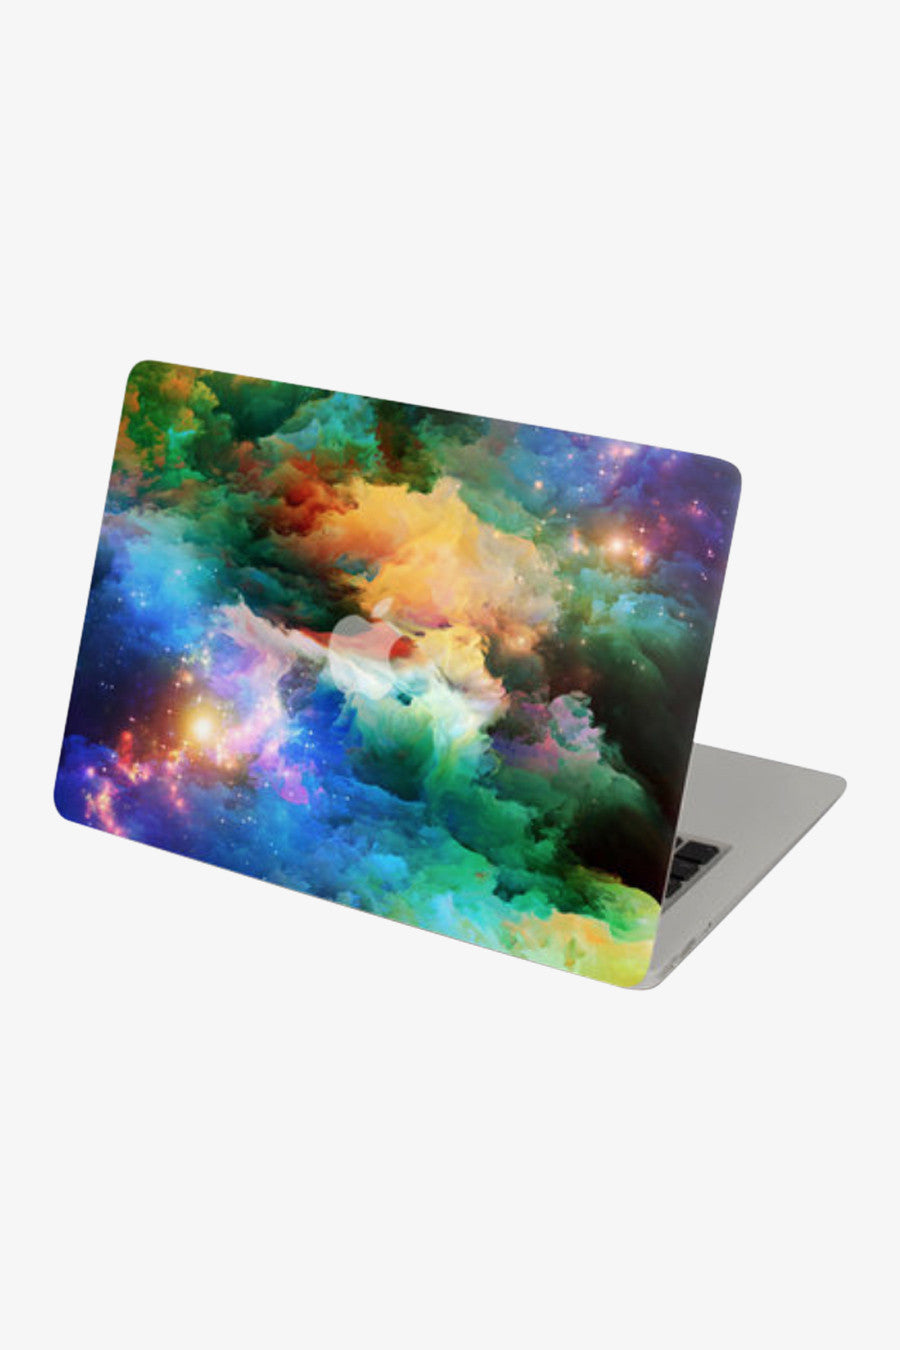 Macbook Colorful Nebula Skin Decal Sticker. Art Decals By Moooh!!